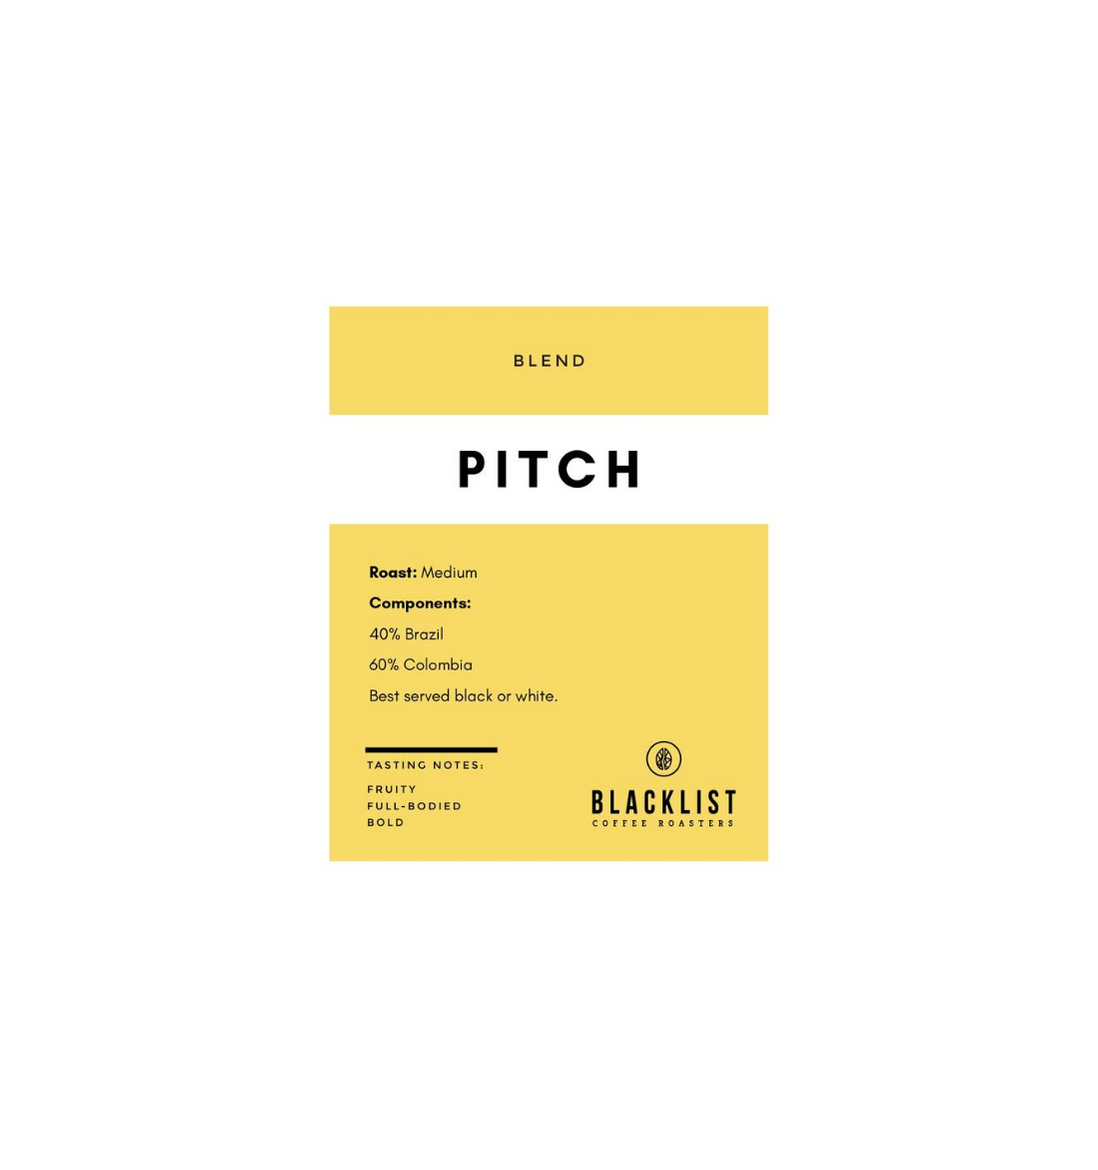 PRE-ORDER: Pitch (250g) by Blacklist